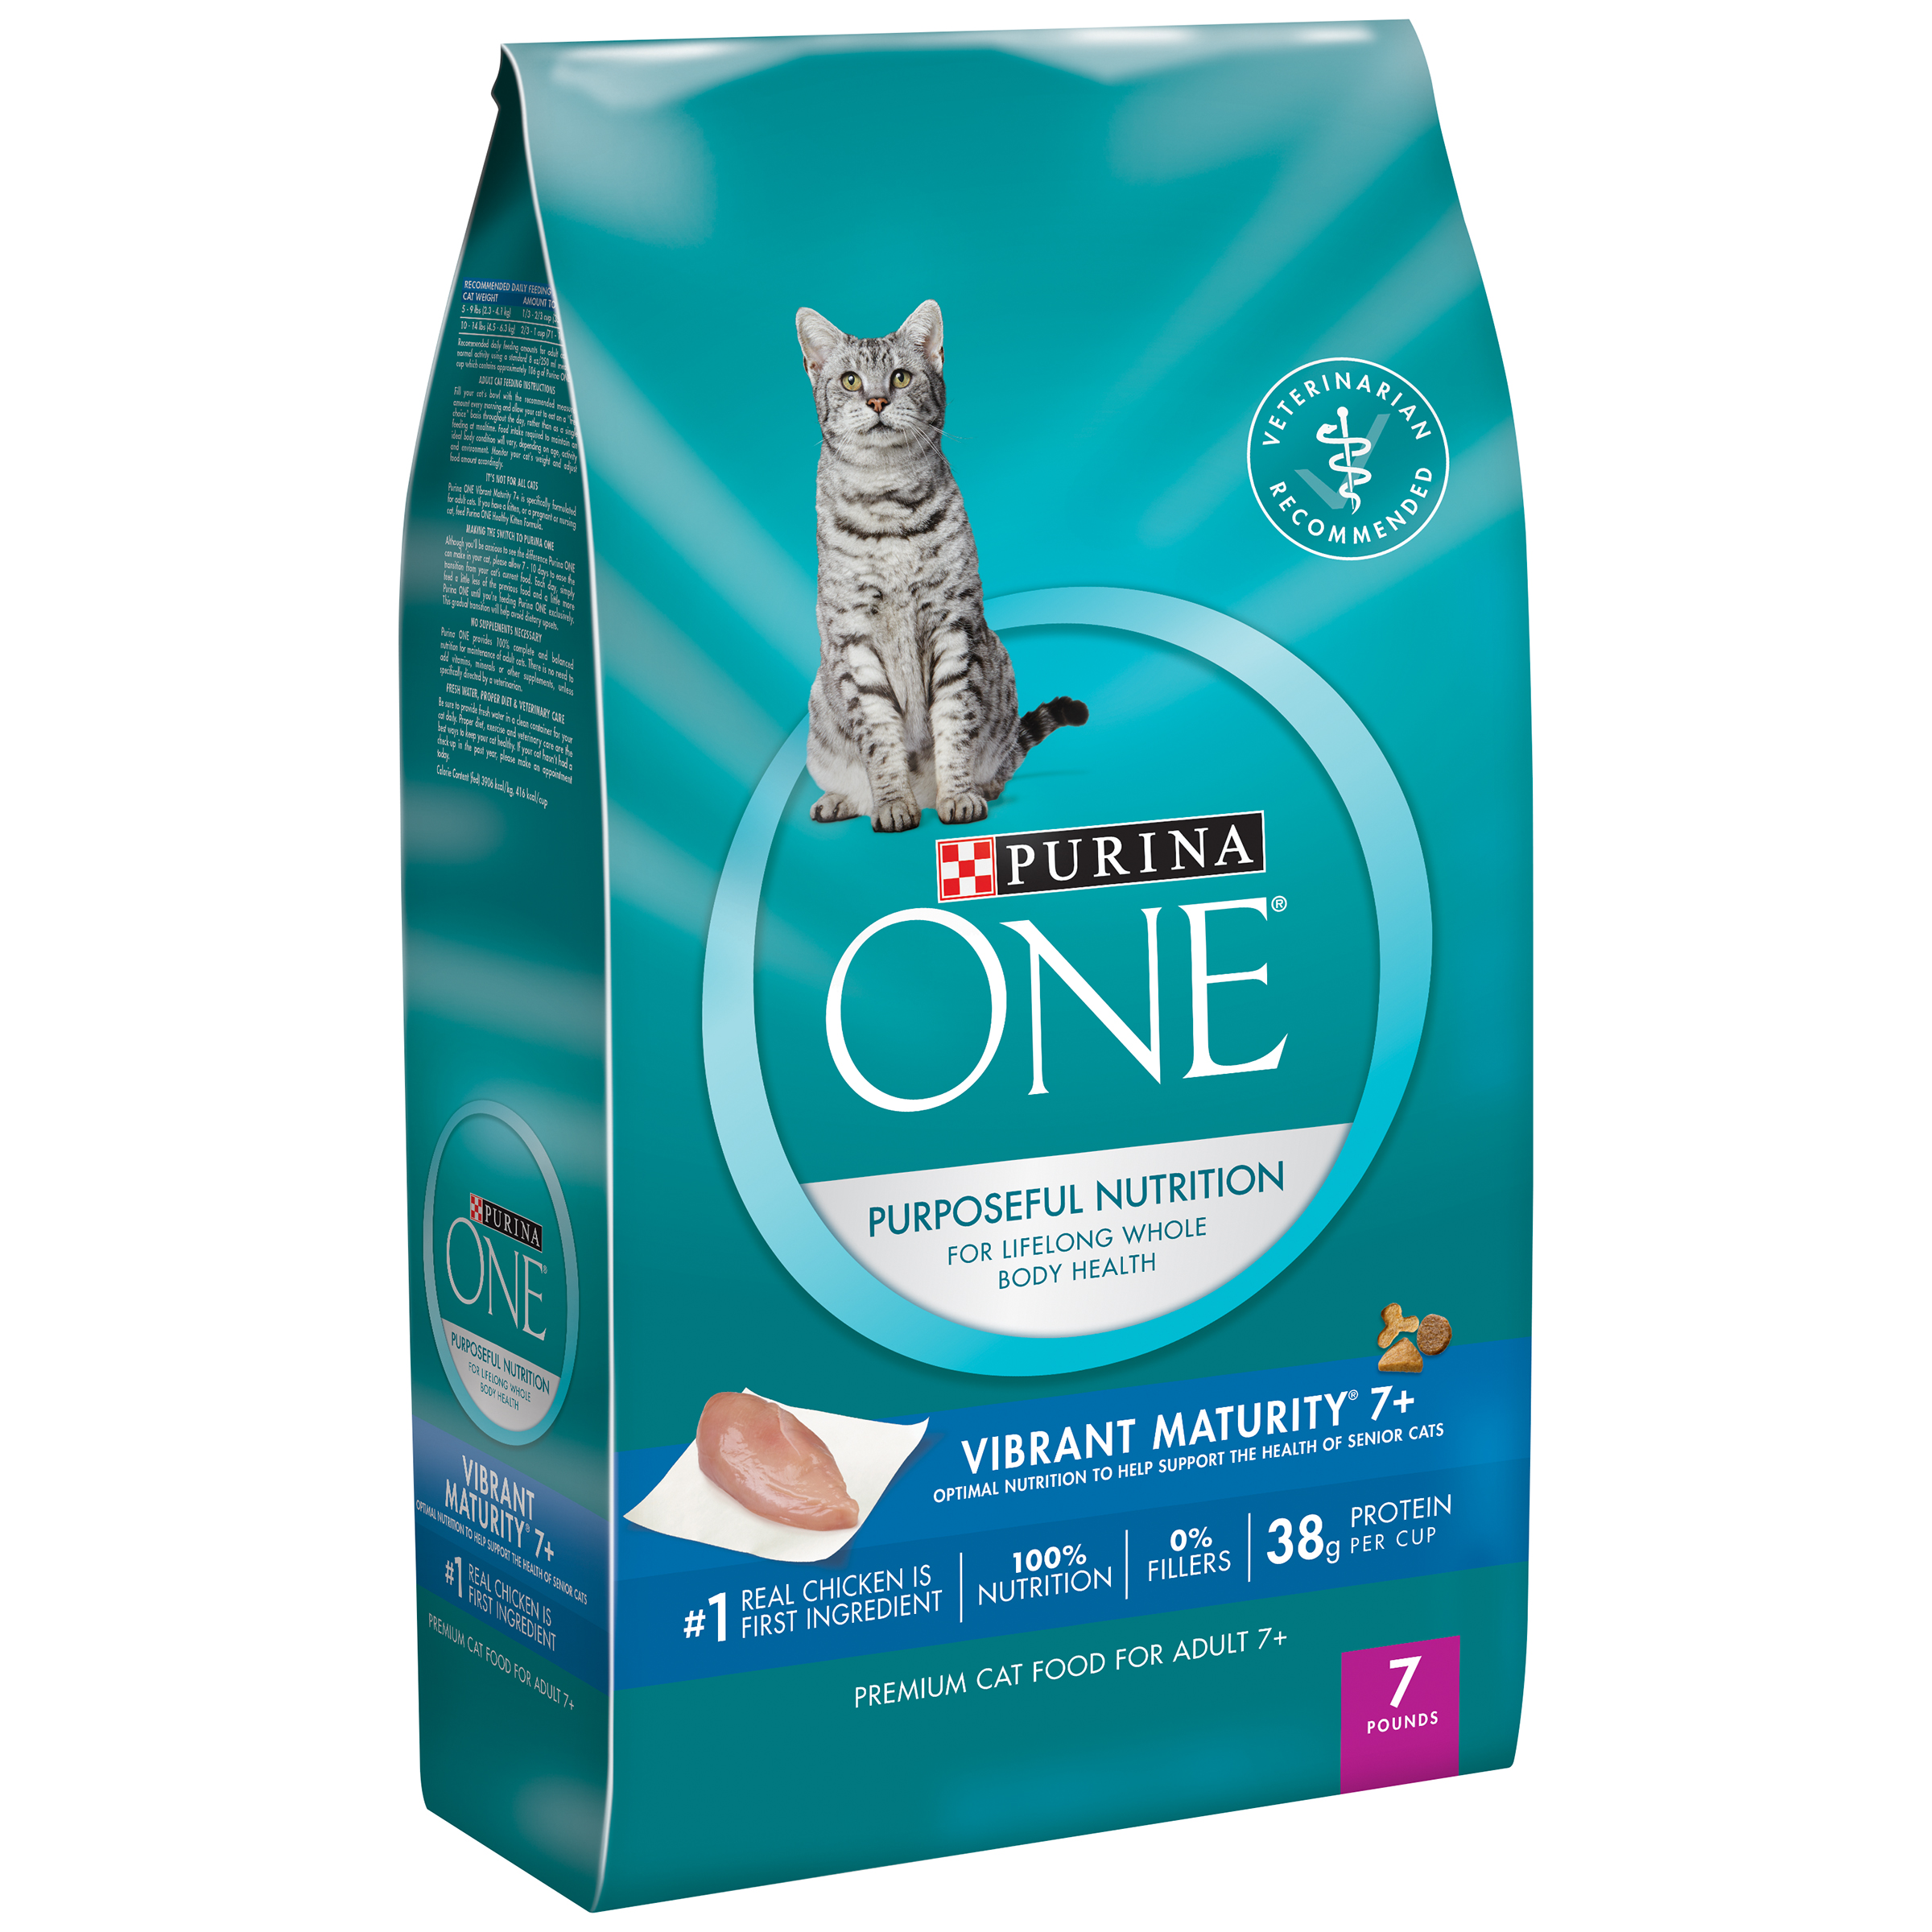 Purina ONE Vibrant Maturity 7+ Adult Premium Cat Food 7 lb. Bag